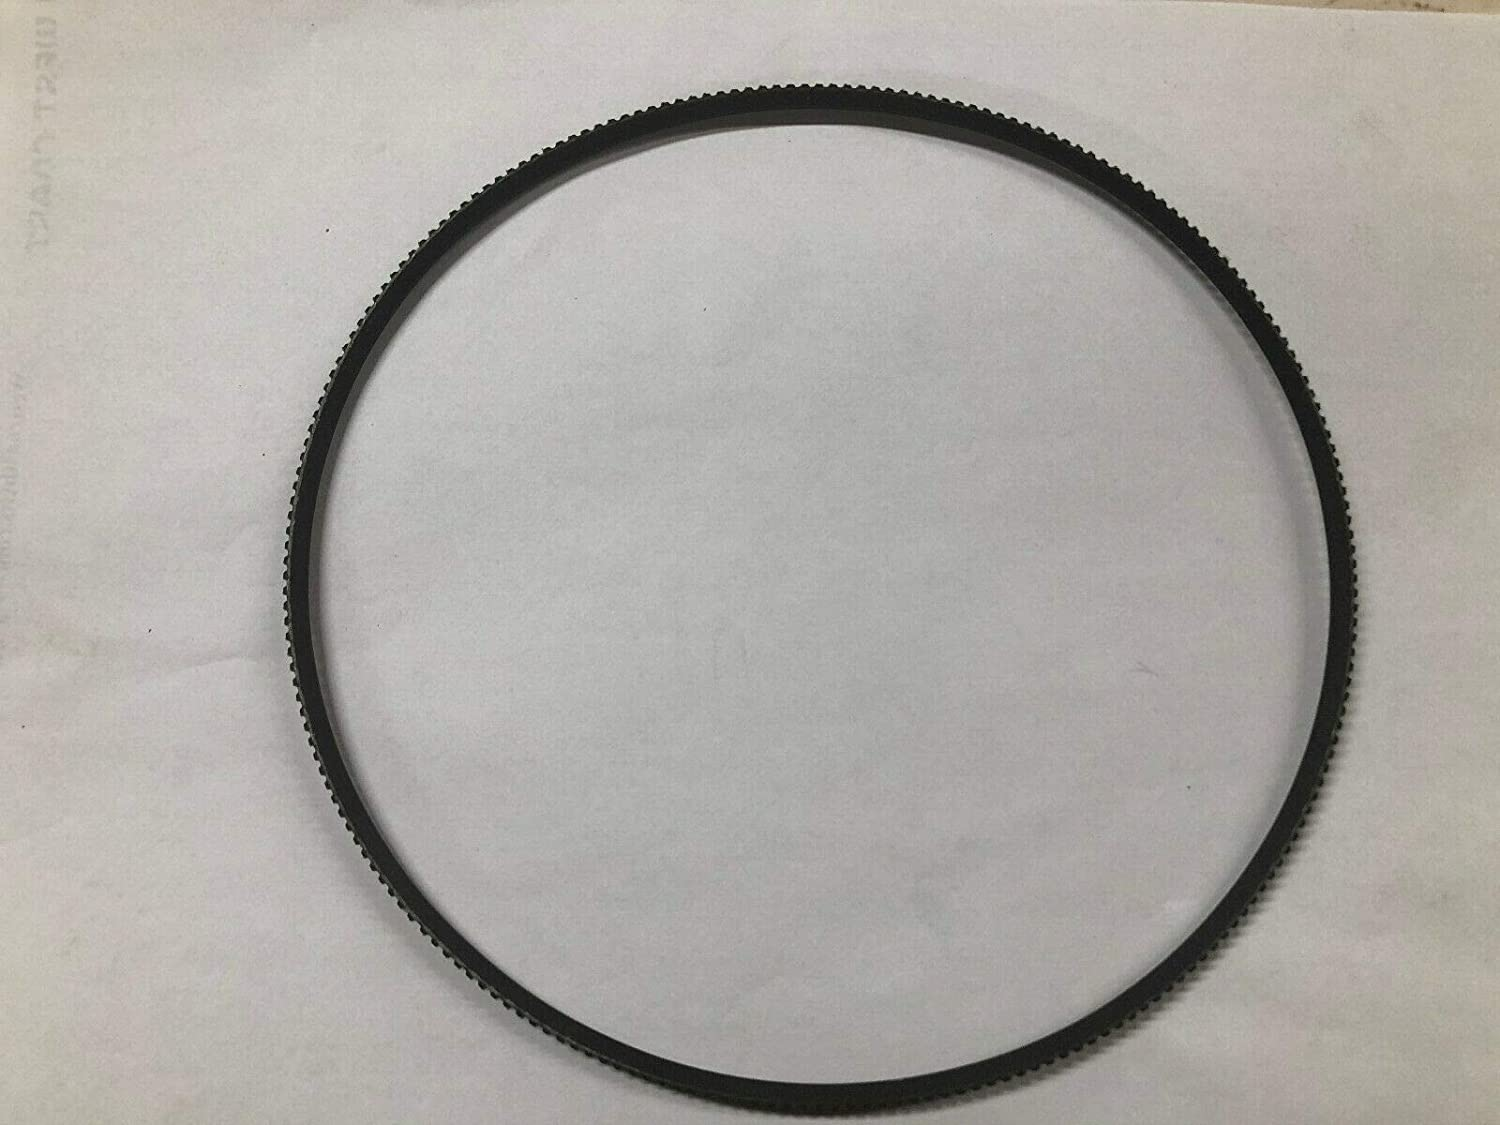 Replacement Parts New 25% OFF Belt NO sale Name for La Variable MX-210V Speed